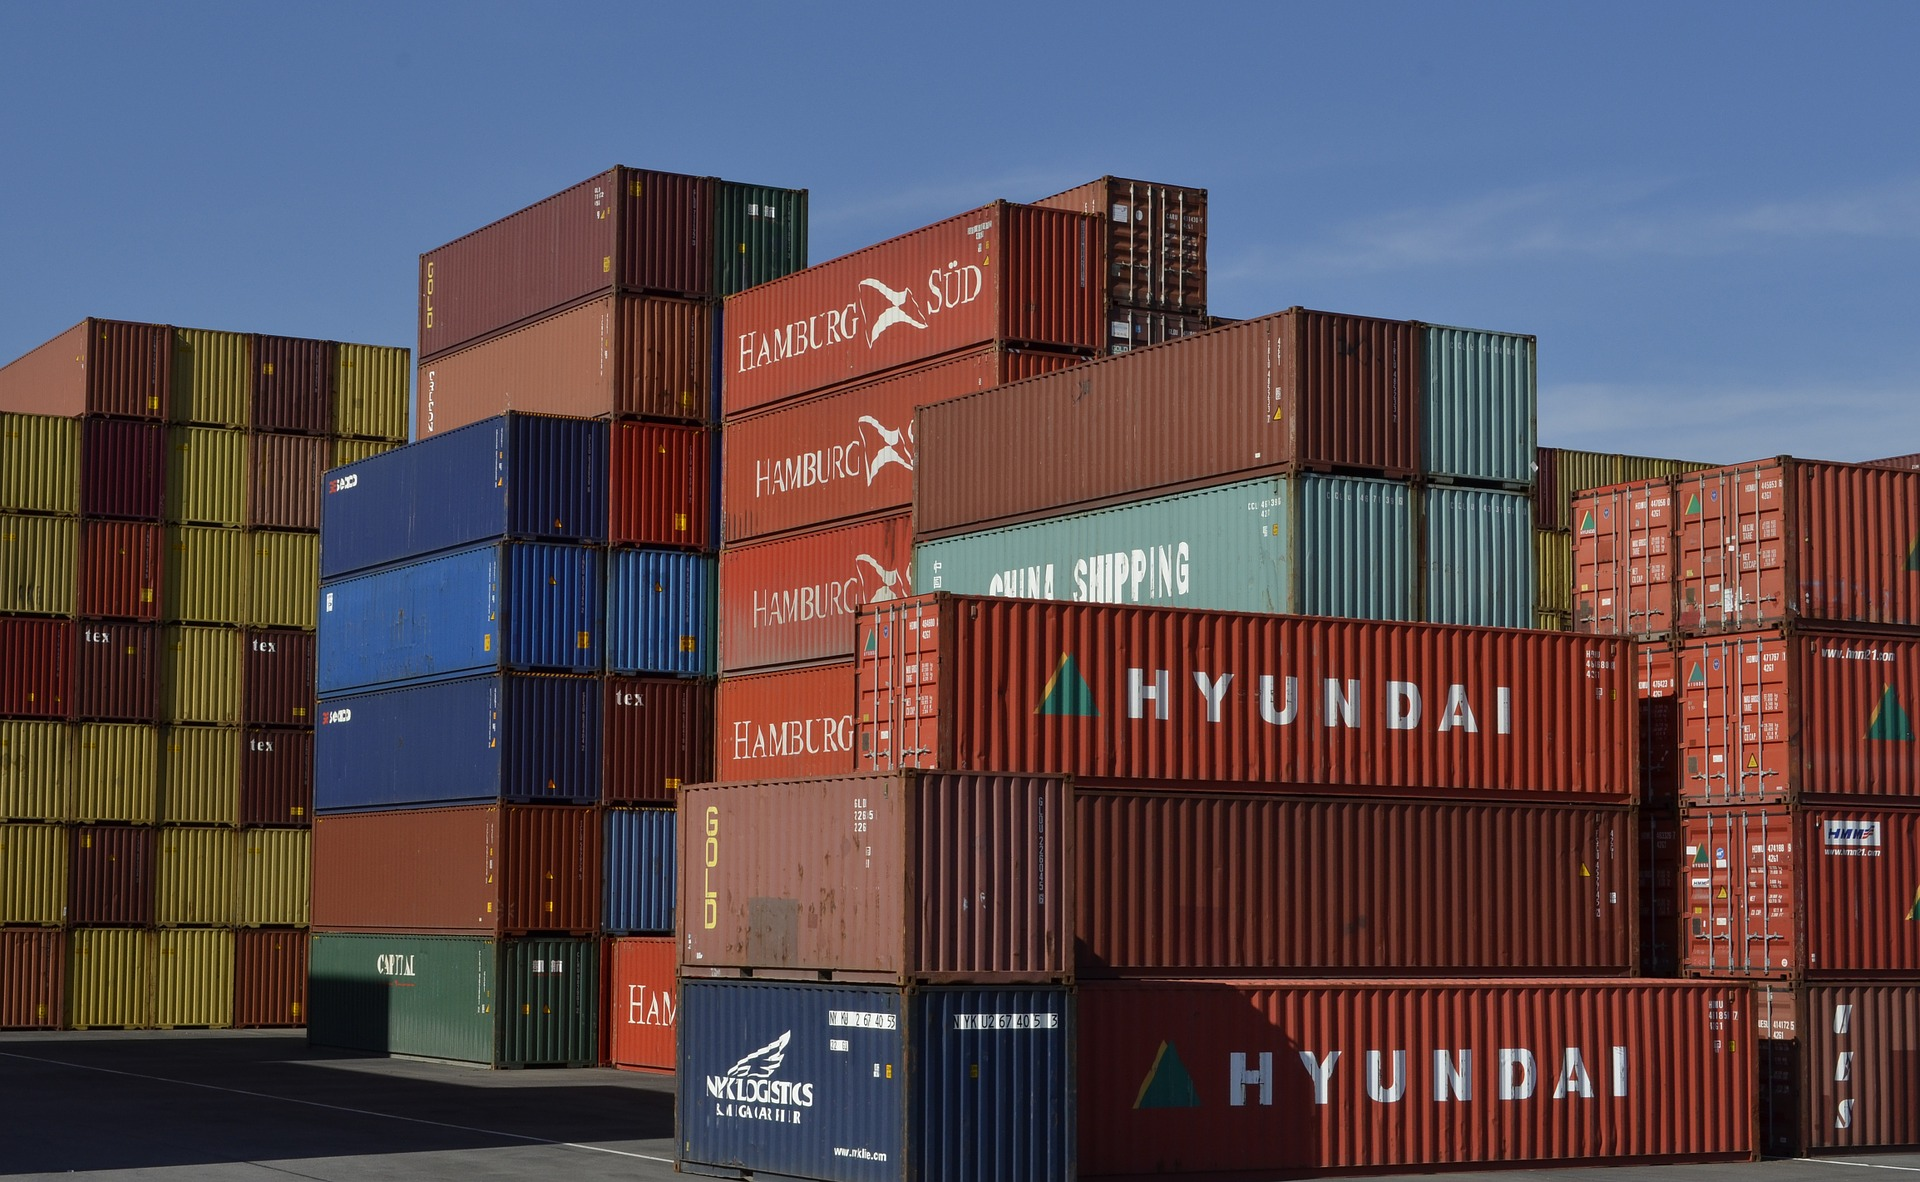 container-789488_1920.jpg